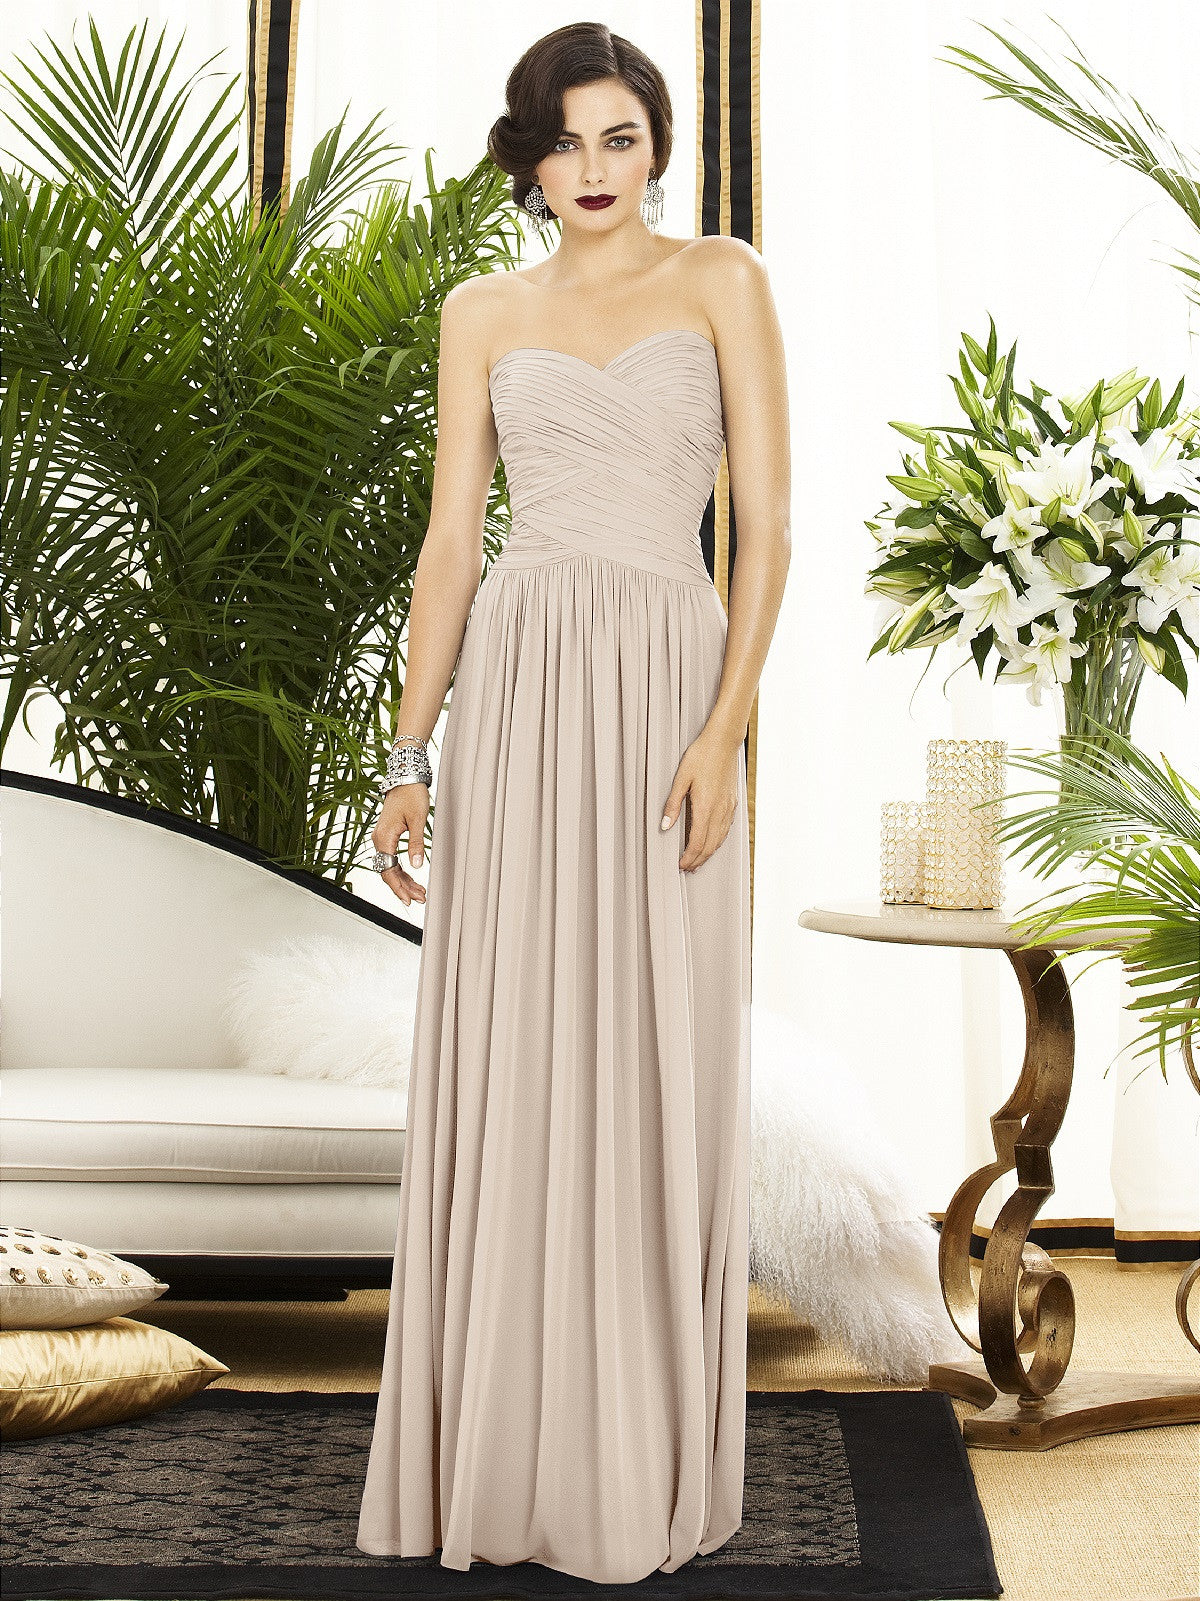 Dessy 2880 bridesmaid dress weddings by lo dessy 2880 long chiffon bridesmaid gown ombrellifo Choice Image